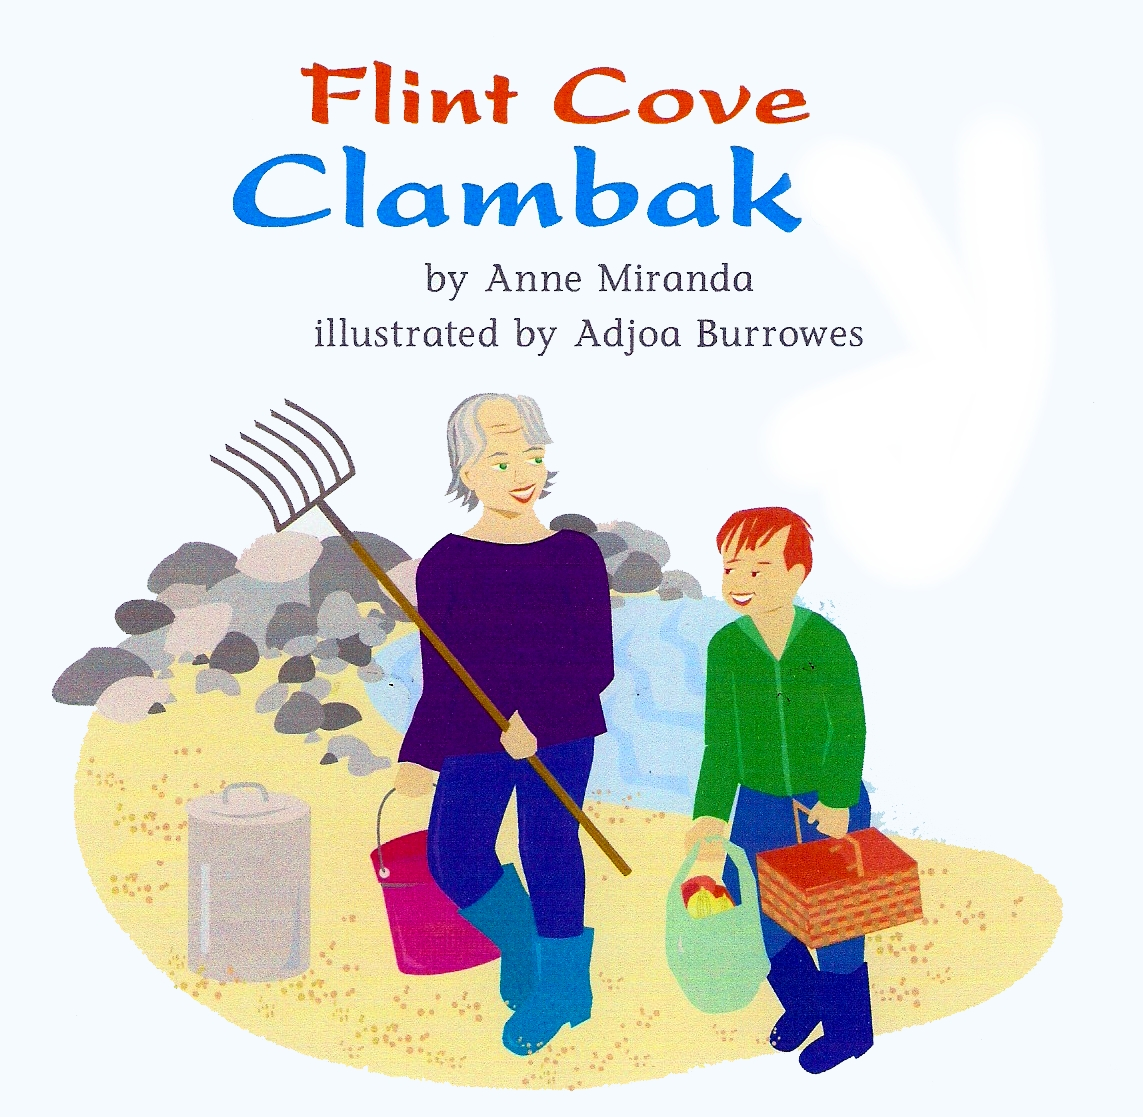 Flint Cove Clambake.jpg